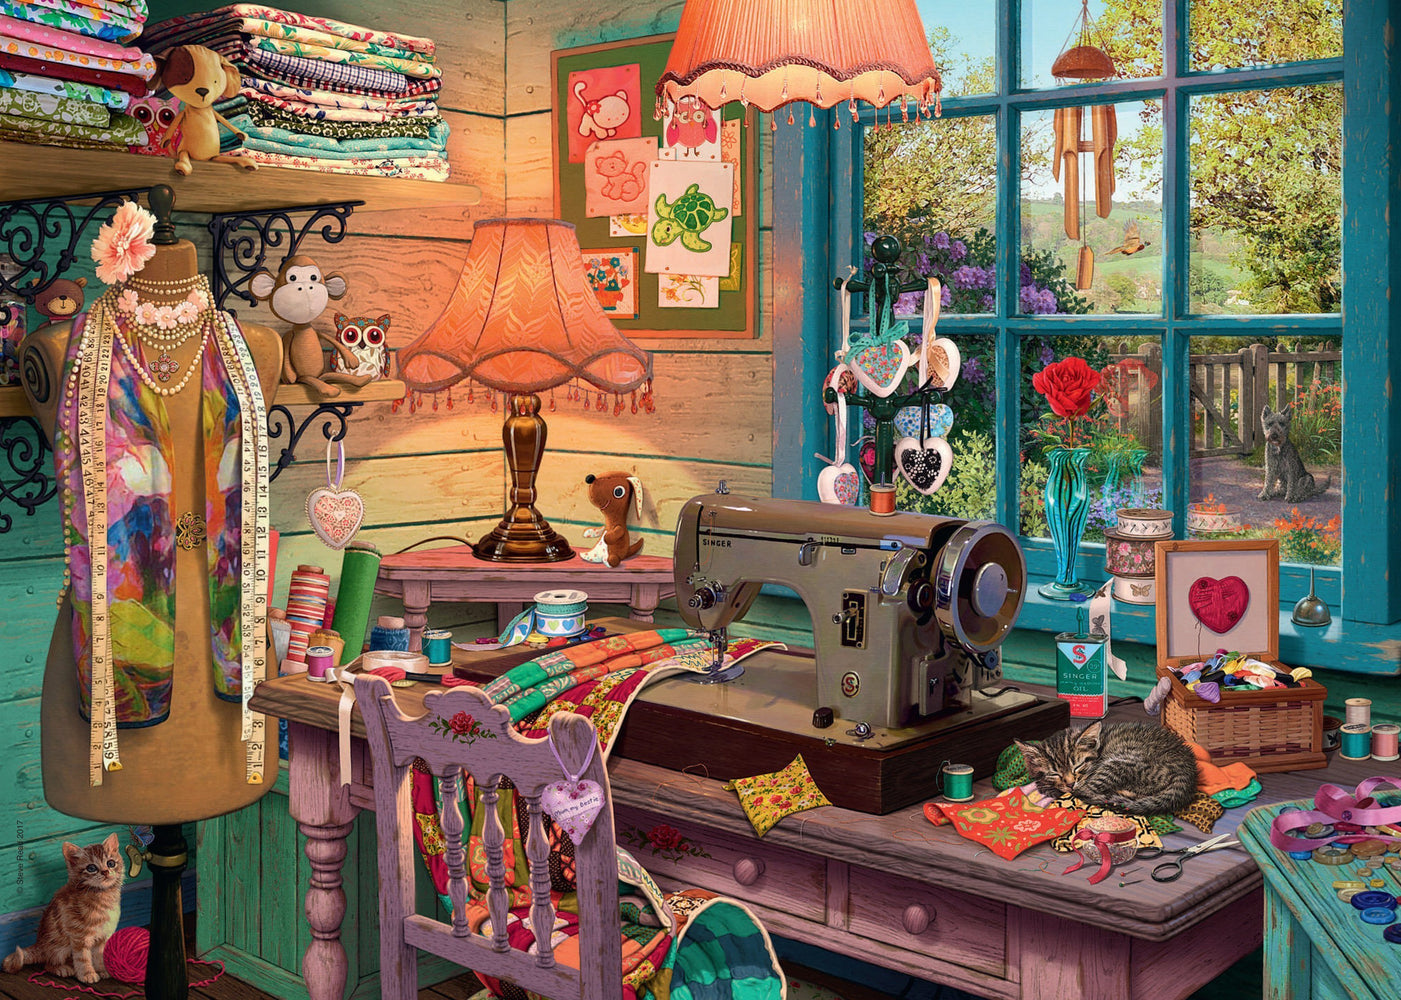 Jigsaw Puzzle - My Haven No 4 The Sewing Shed 1000 Piece Jigsaw Puzzle